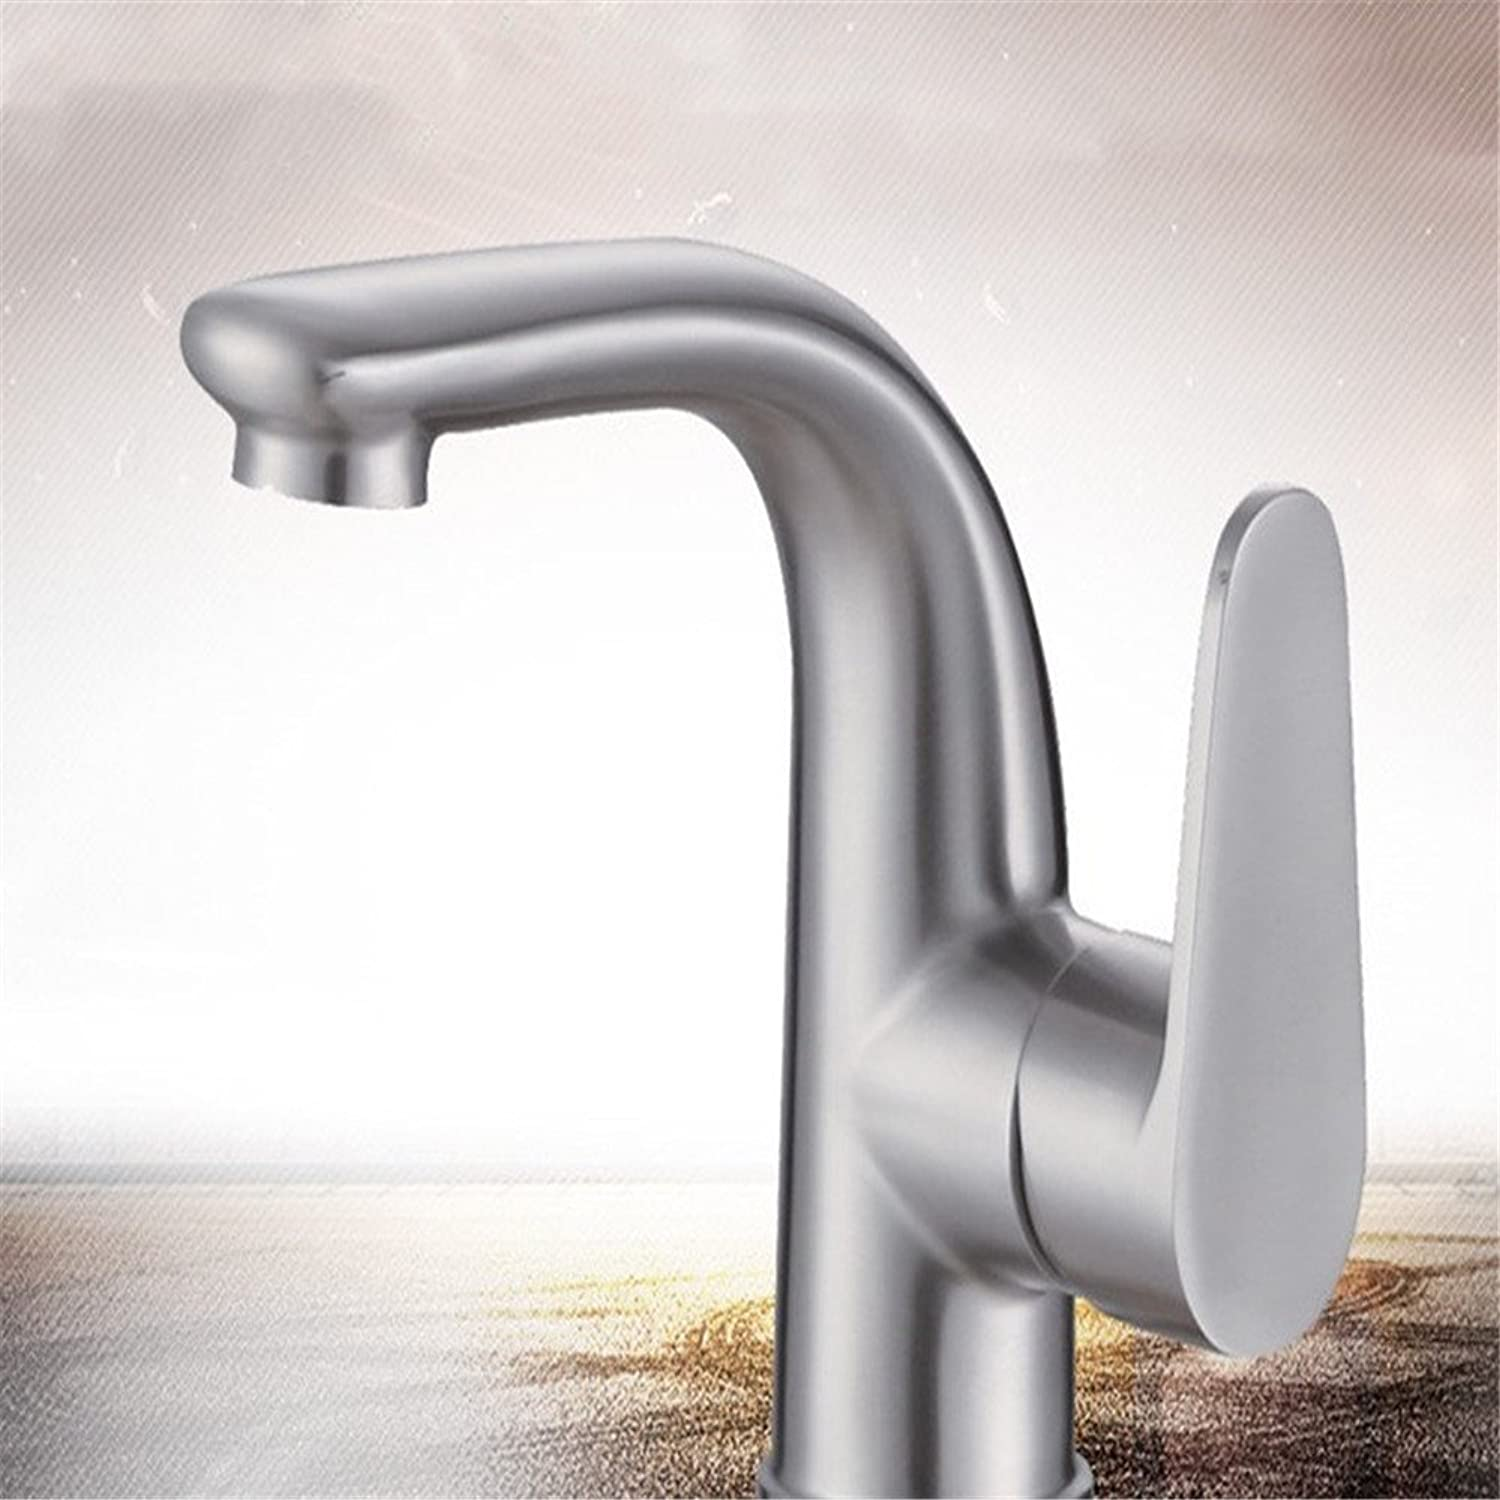 SHLONG Tap Lead-Free 304 Stainless Steel Basin Faucet Brushed Single Hole Hot and Cold Bathroom Toilet